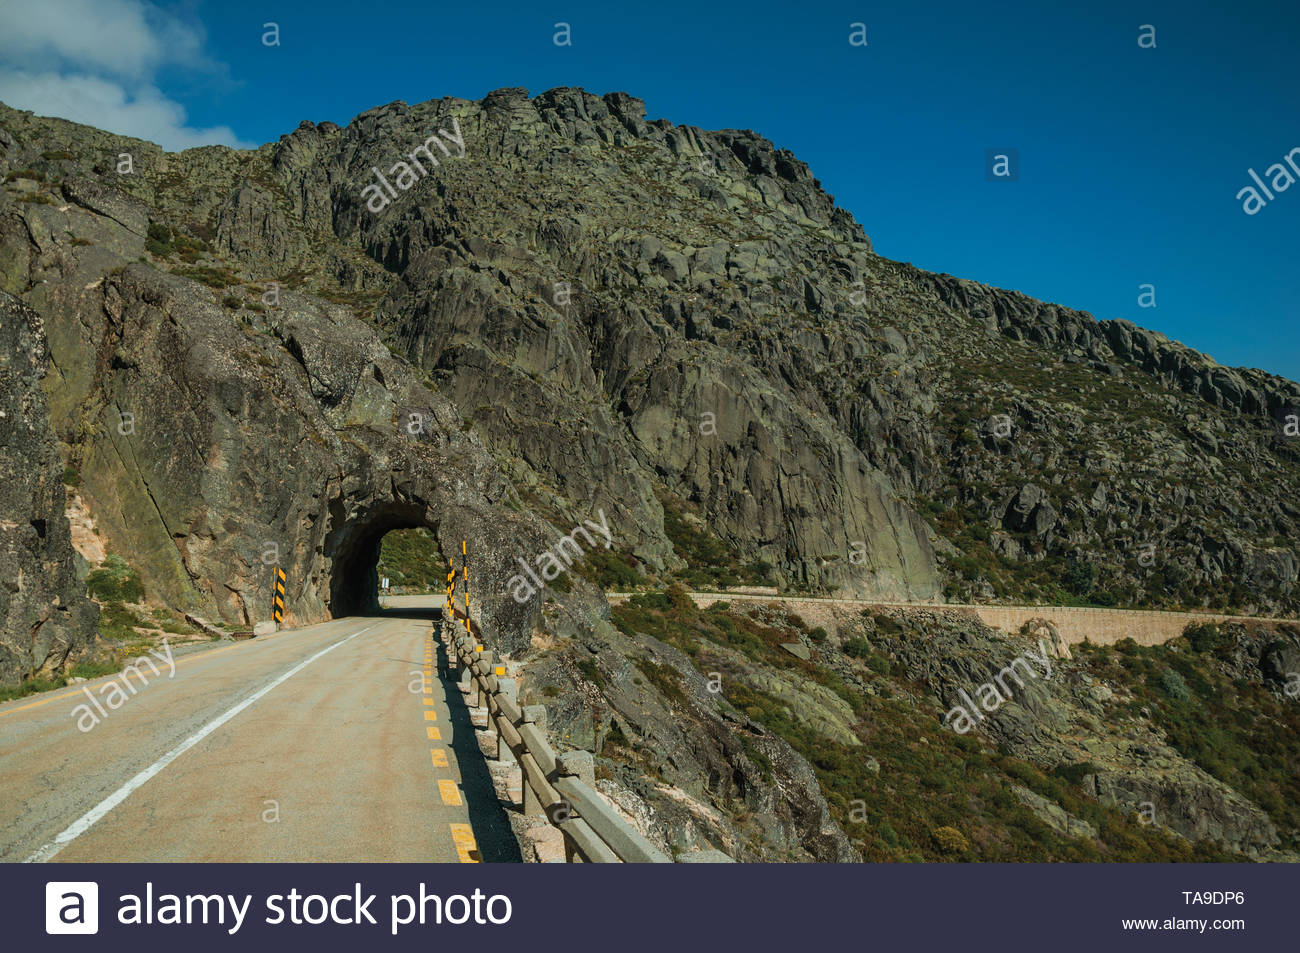 road on hilly landscape passing through tunnel dug in rock at the highlands of serra da estrela the highest mountain range in continental portugal TA9DP6